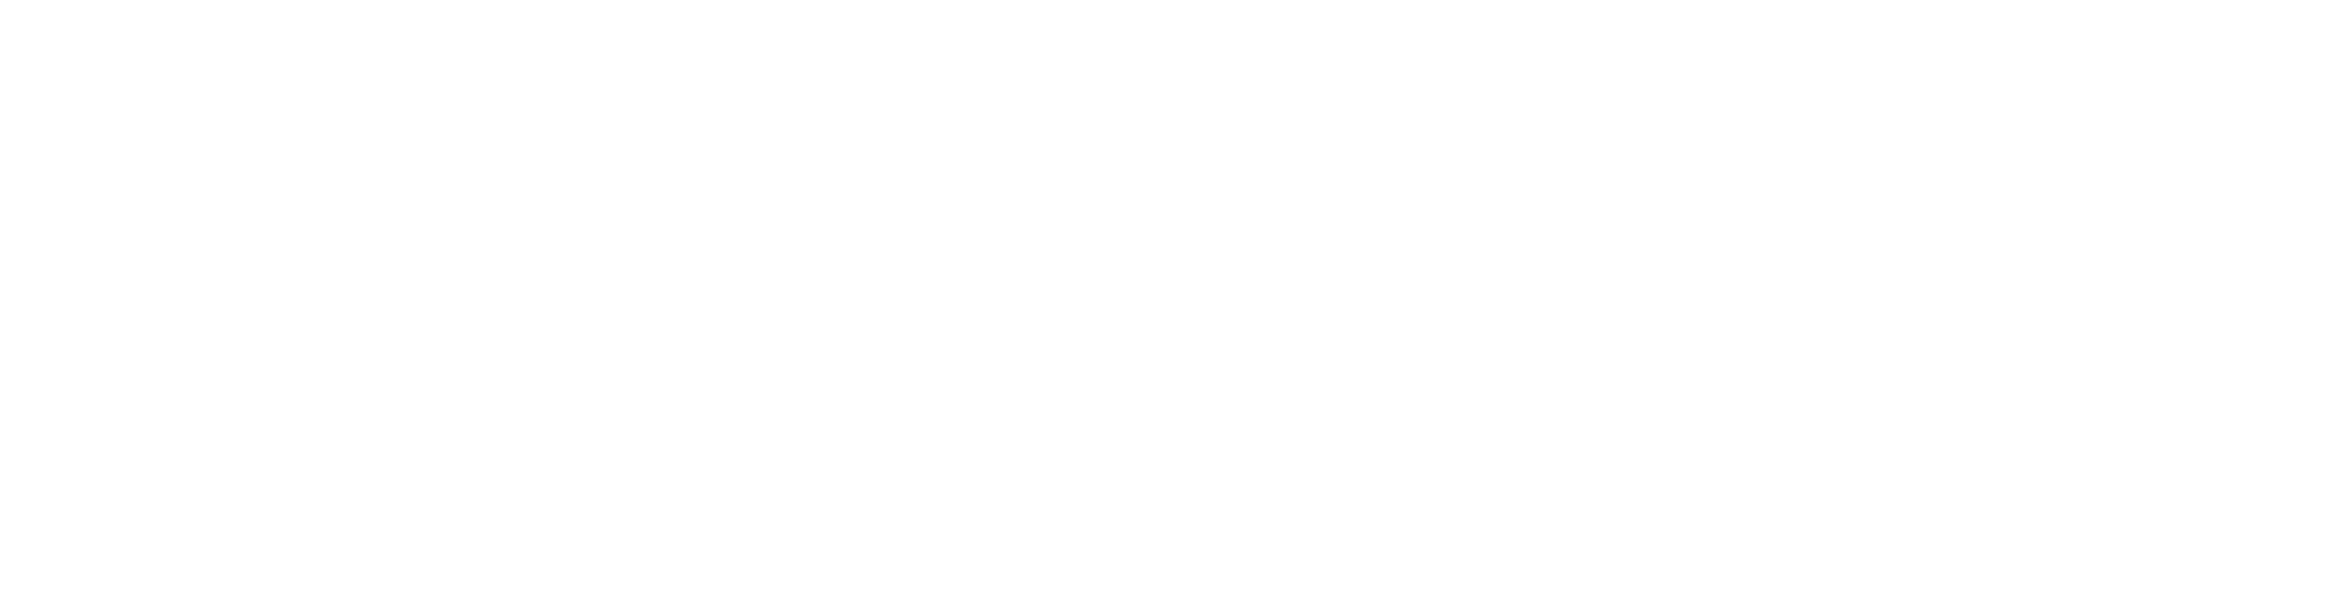 The WPCampus 2018 conference, where WordPress meets higher education, will take place July 12-14, 2018 in St. Louis, Missouri.